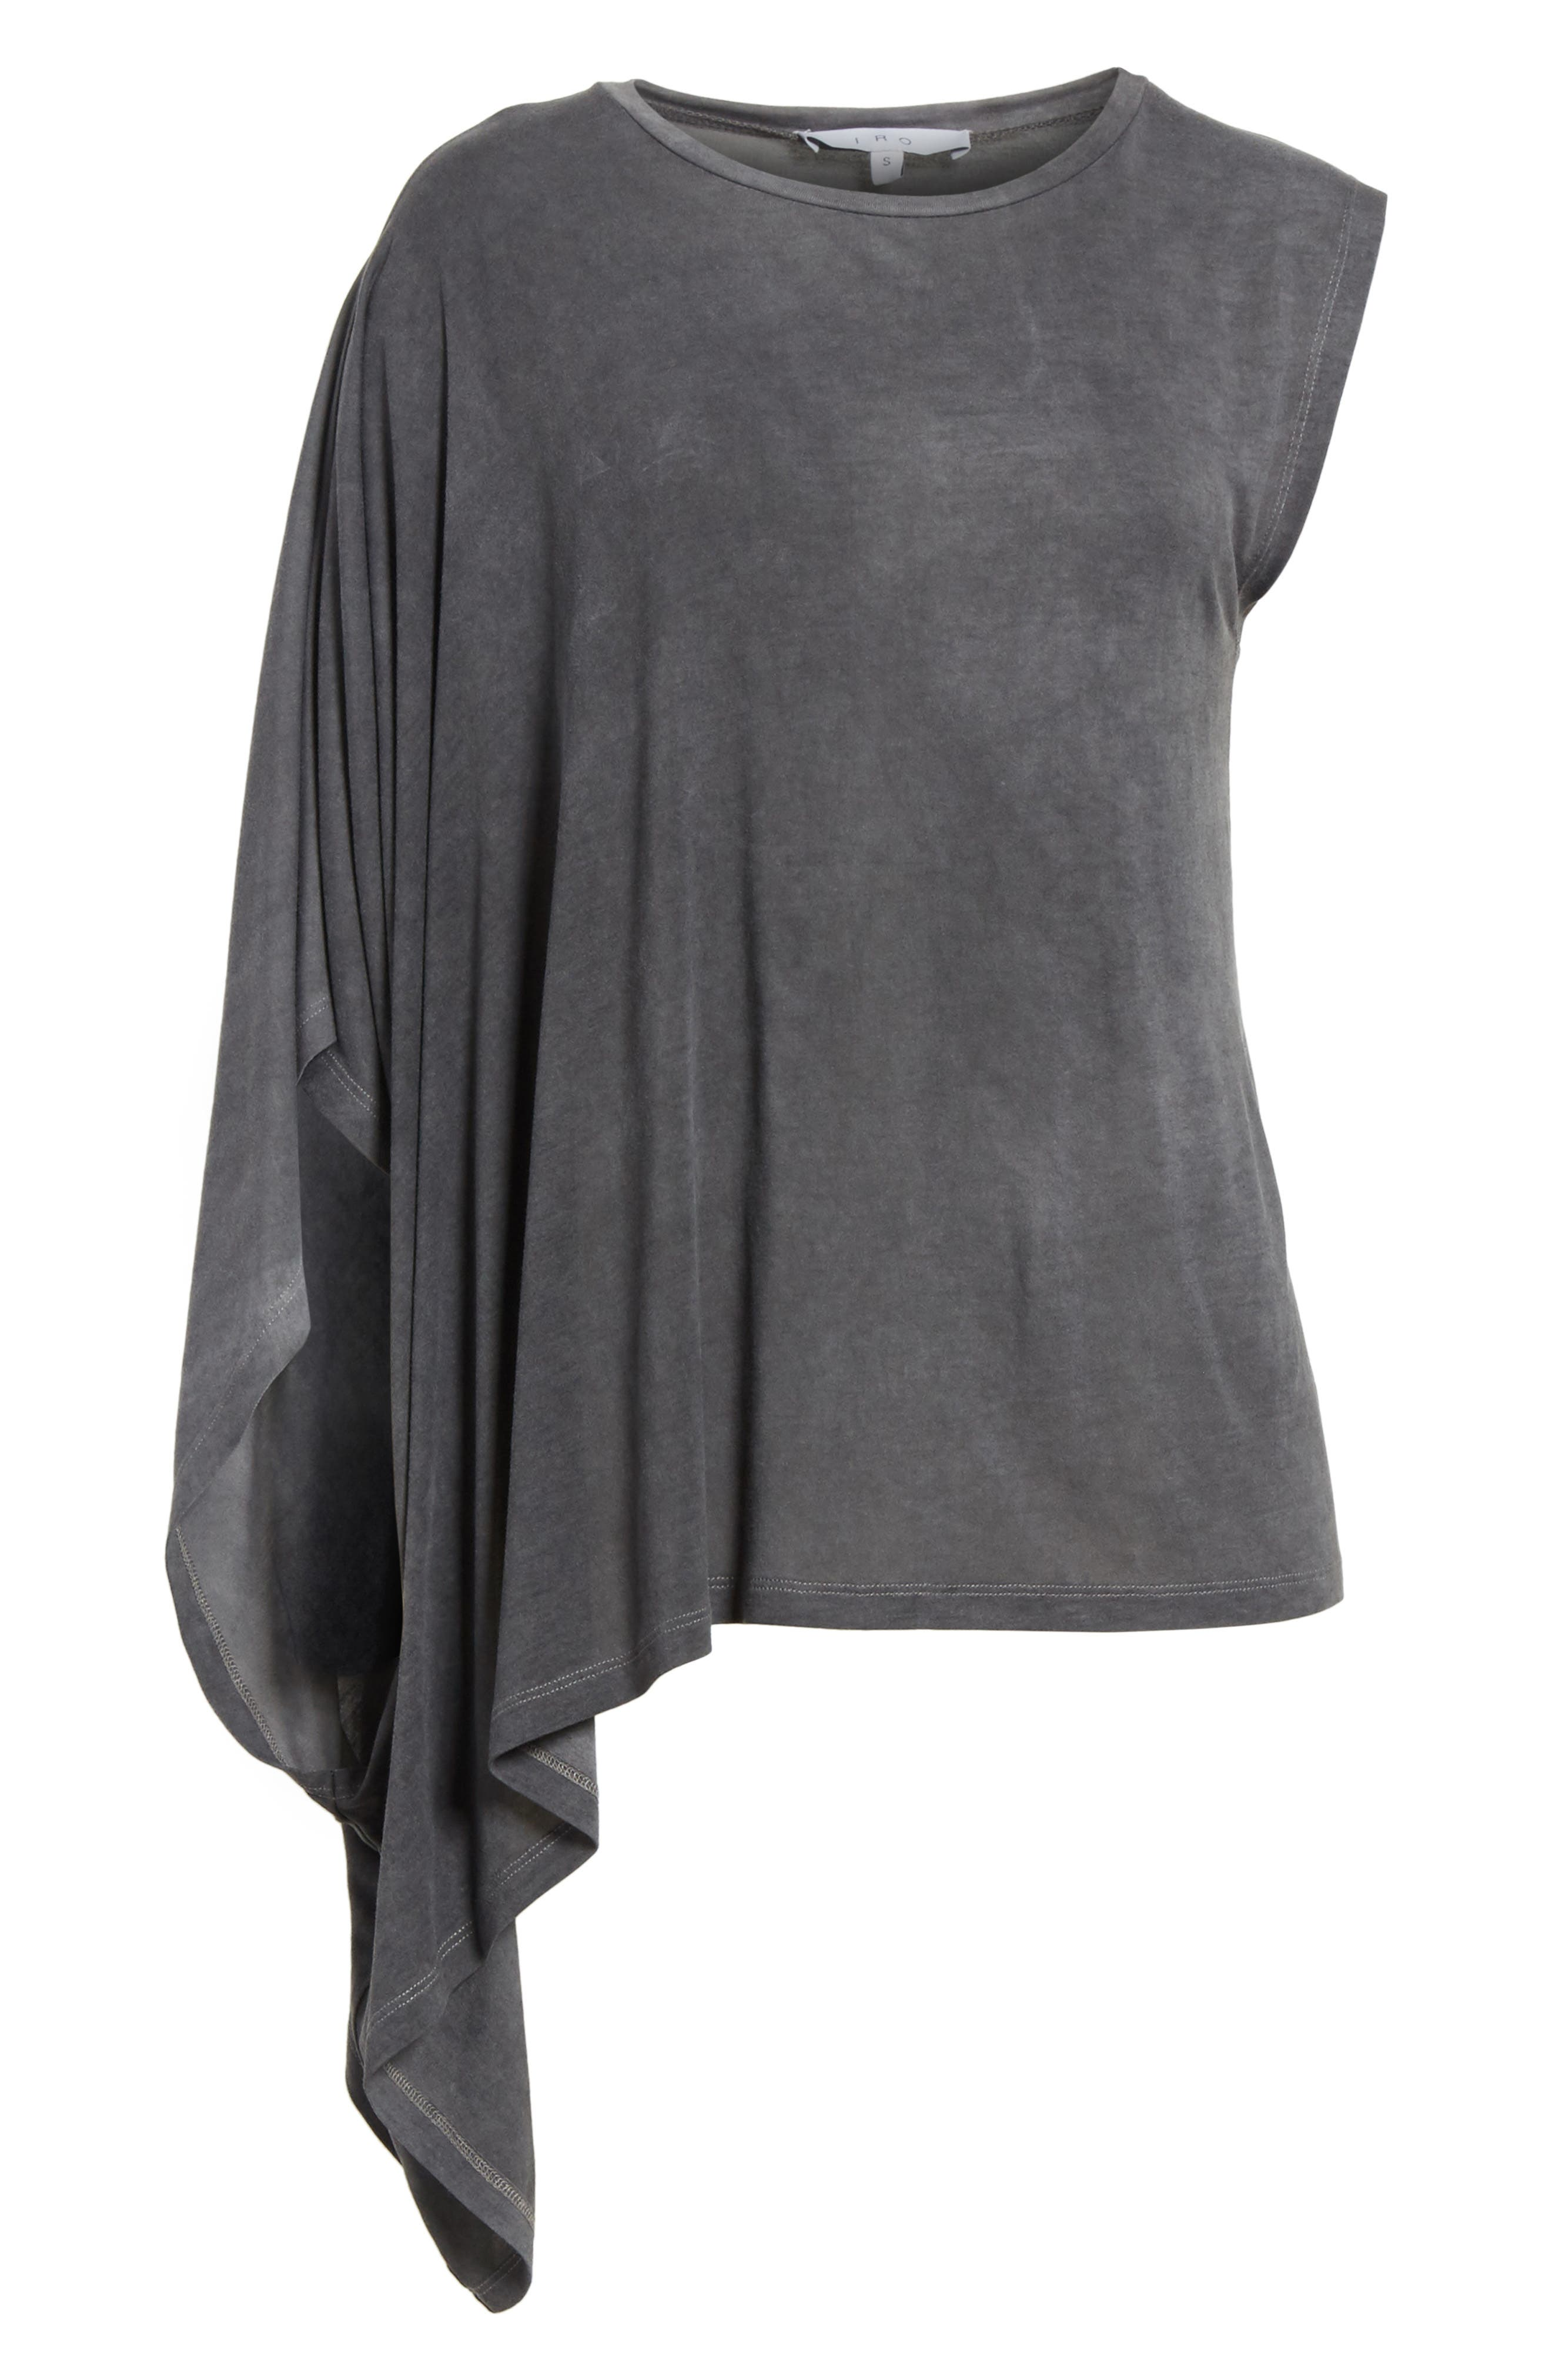 Eloaz Asymmetrical Draped Top,                             Alternate thumbnail 6, color,                             Charcoal